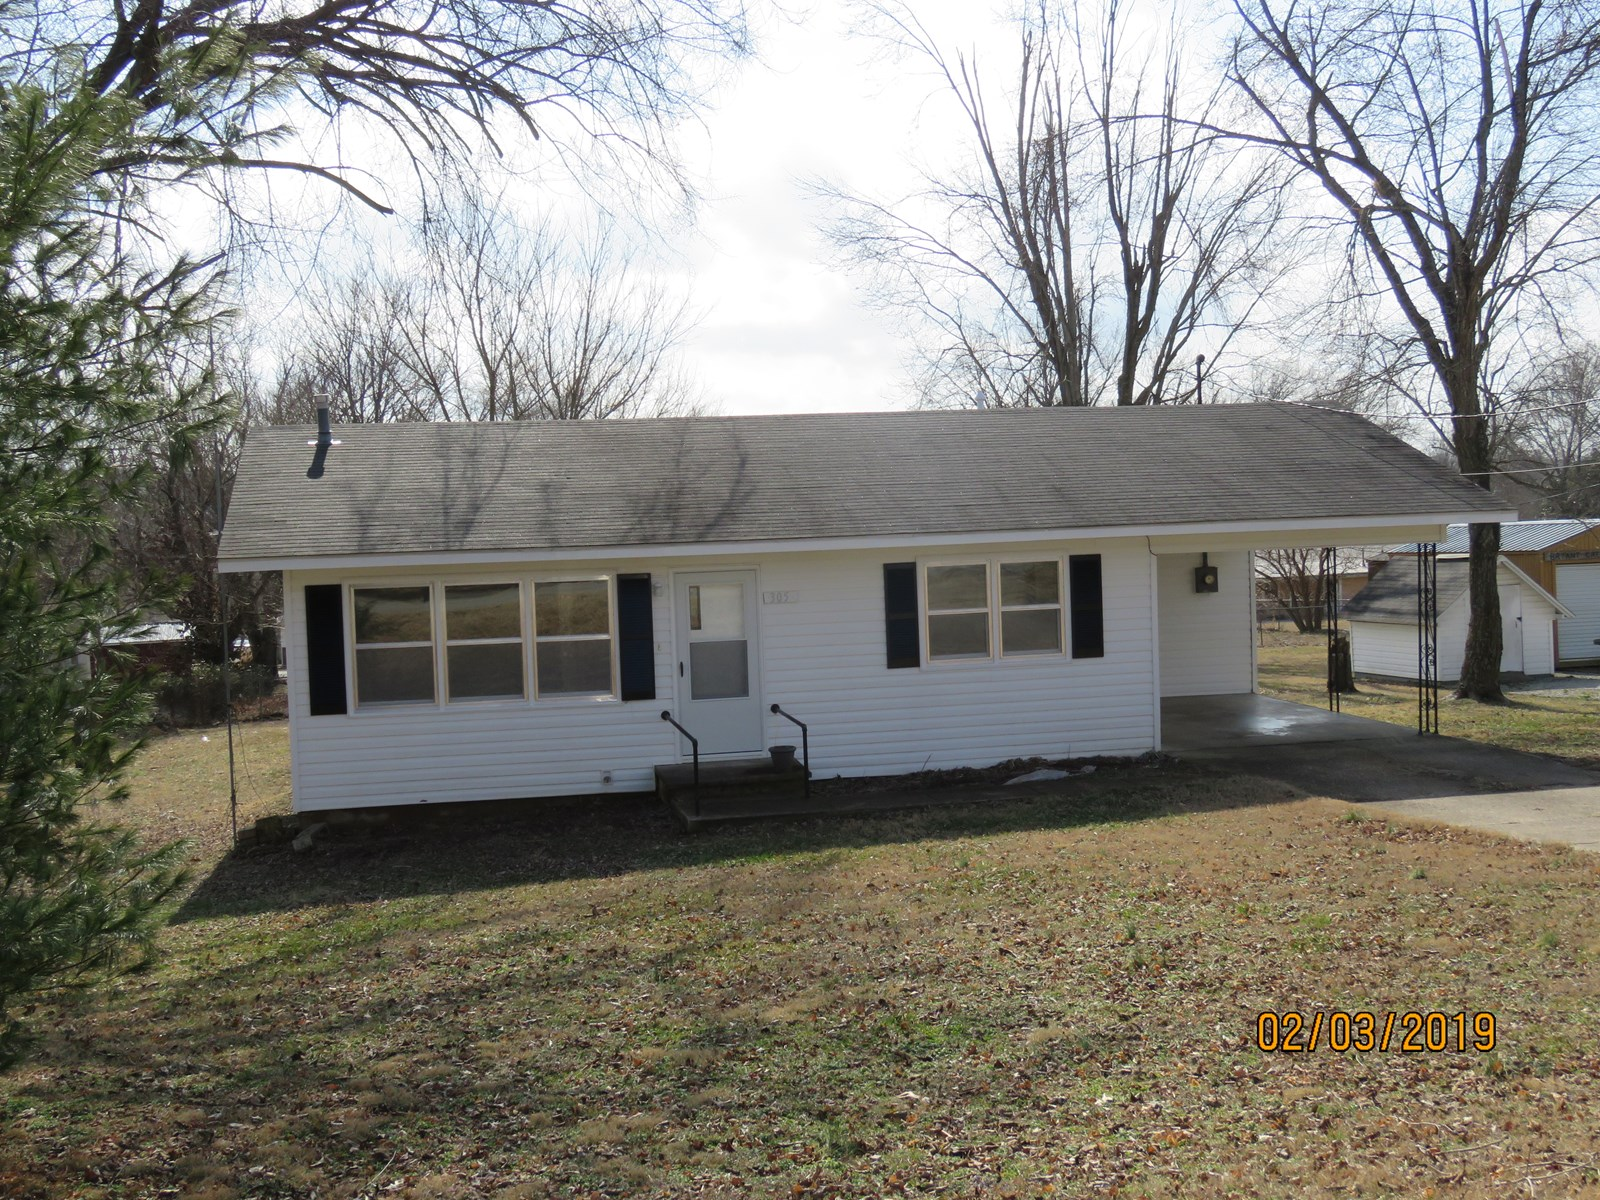 Move in ready house for sale in Ava, Mo